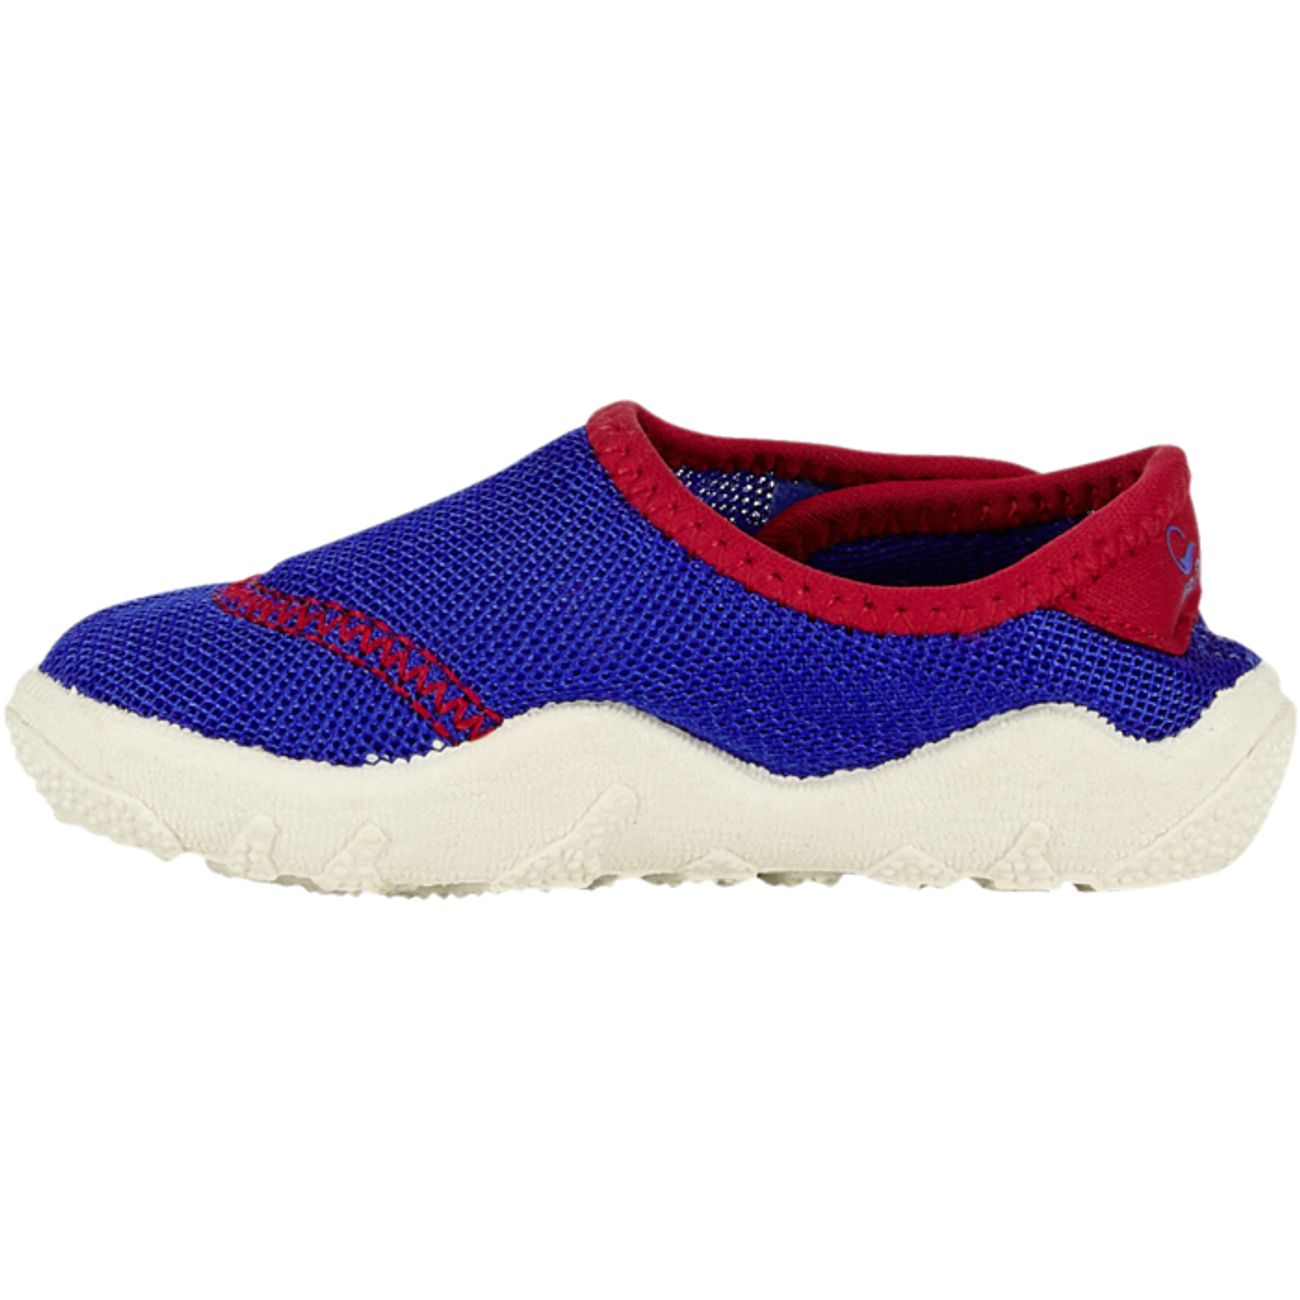 CHAUSSONS NEOPRENE Plage Bébé UP2GLIDE CHAUSSONS